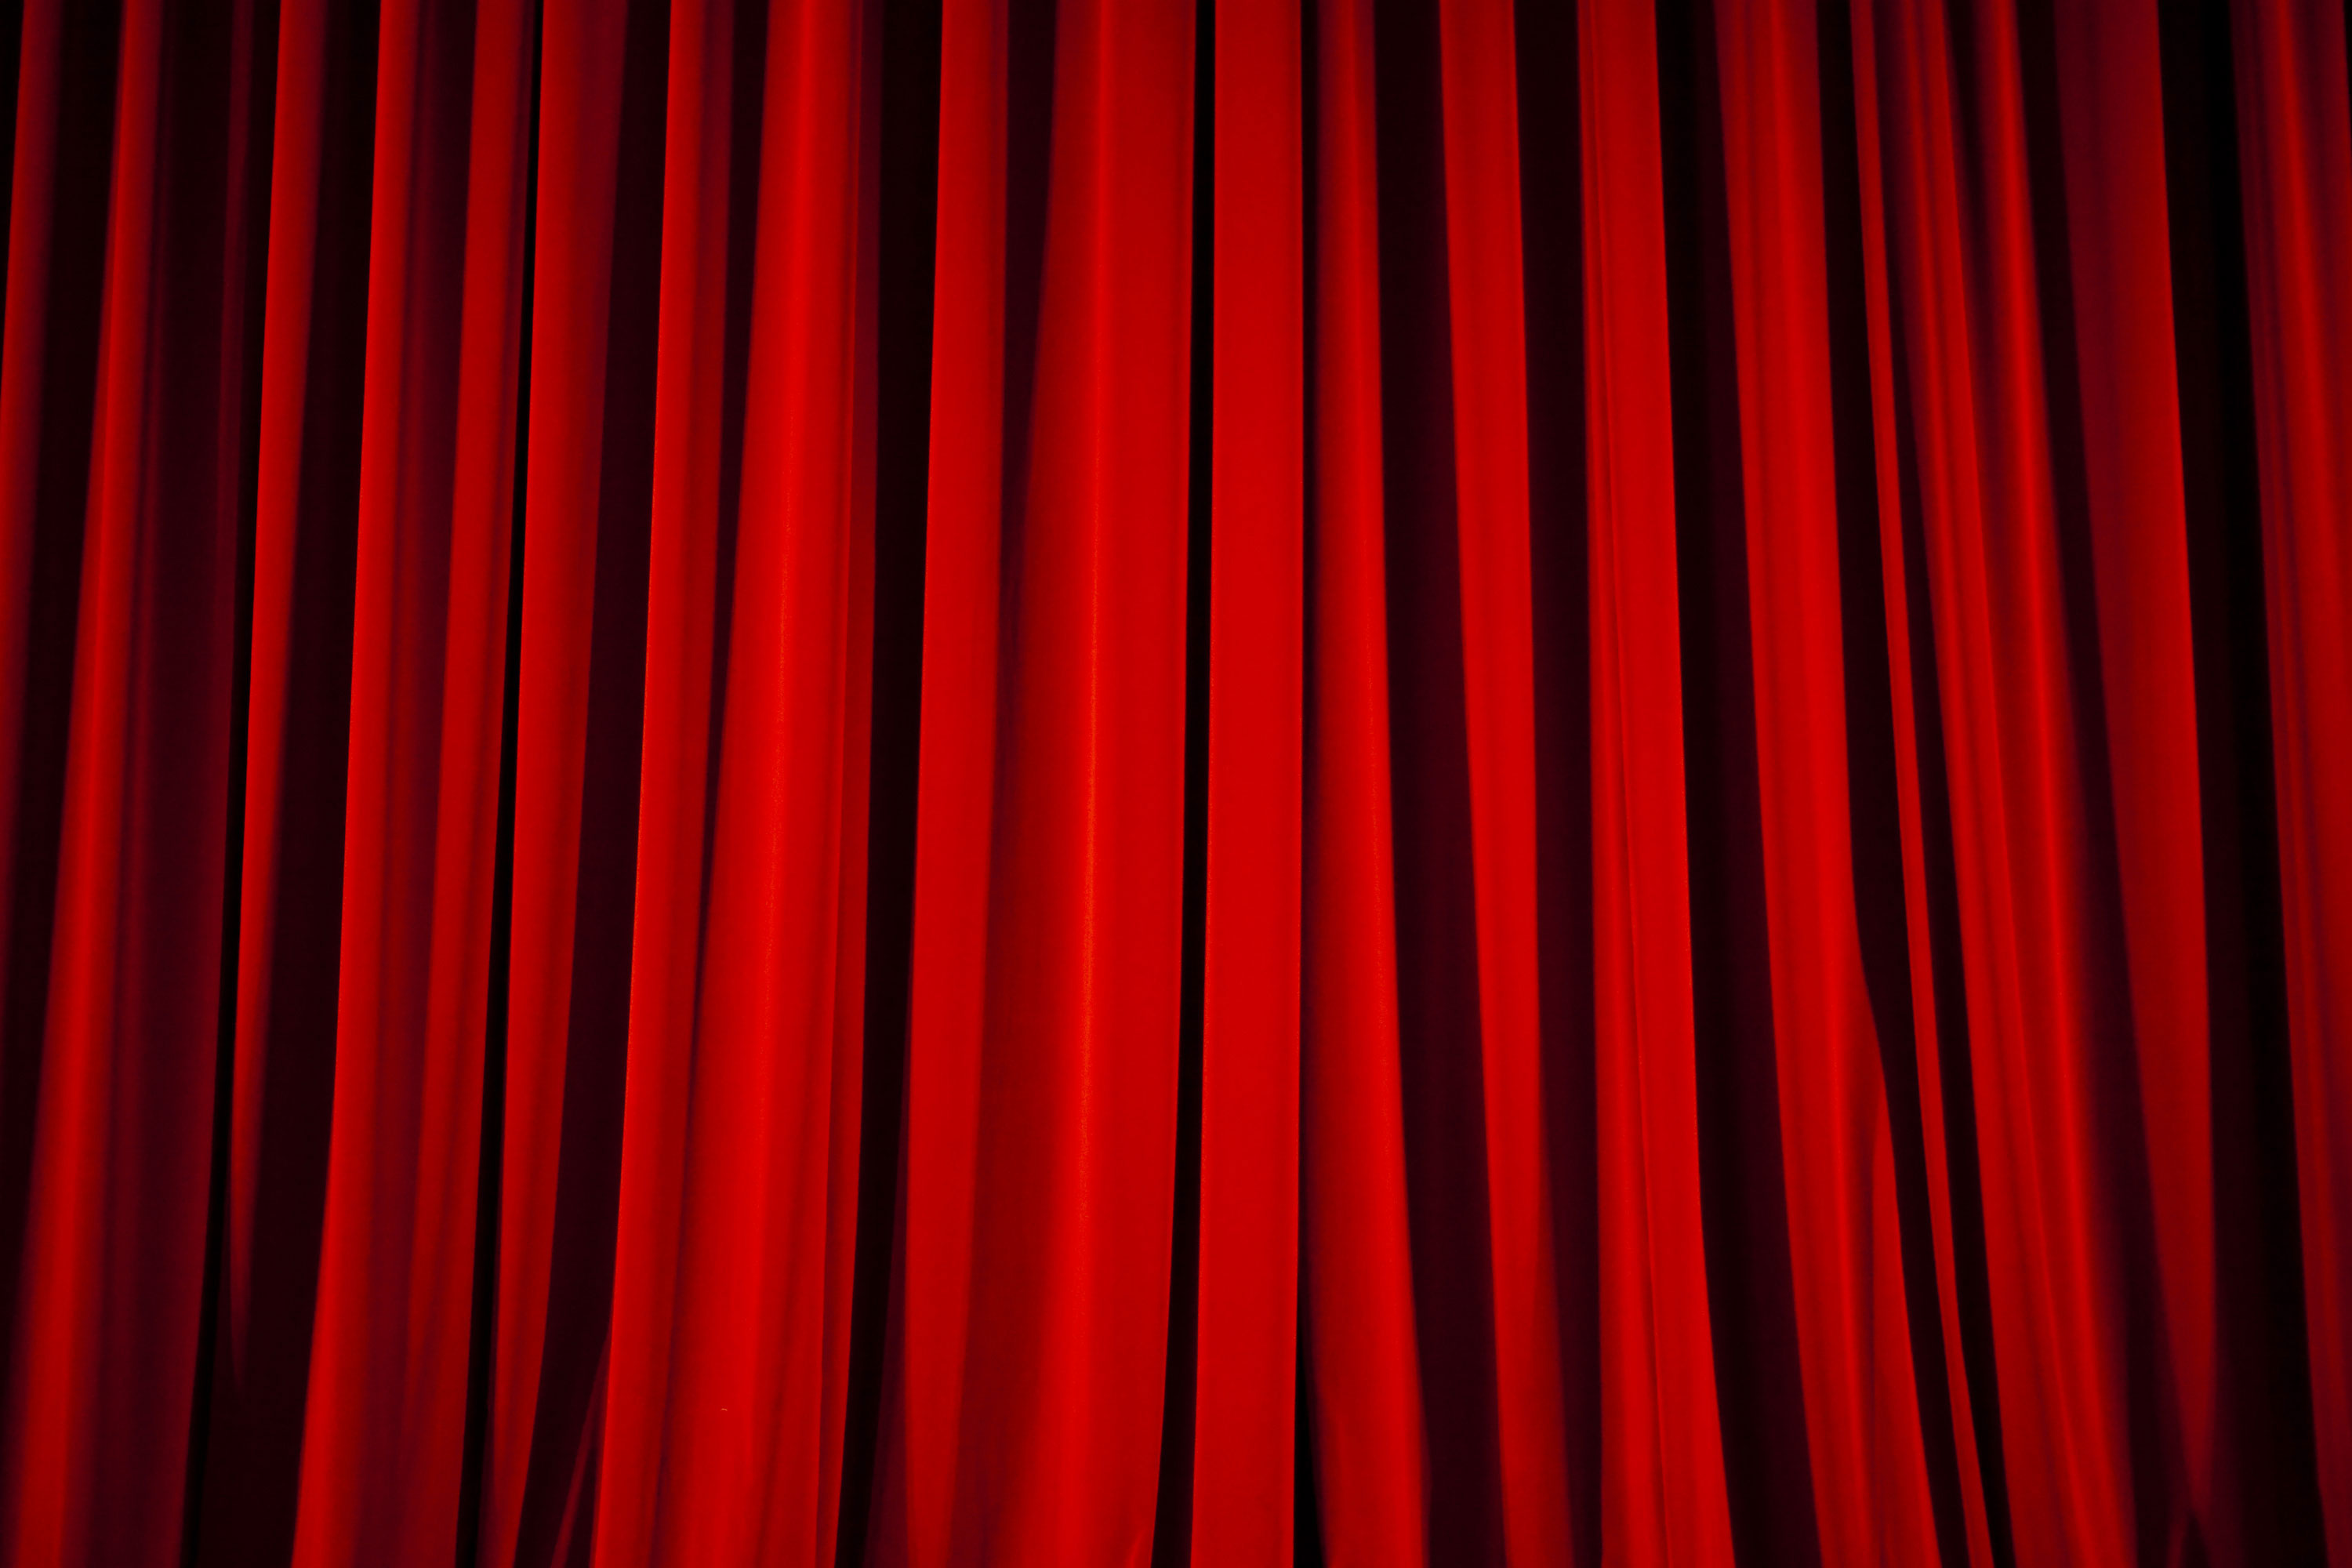 Theatre clipart red curtain Clipart Free Download in Art